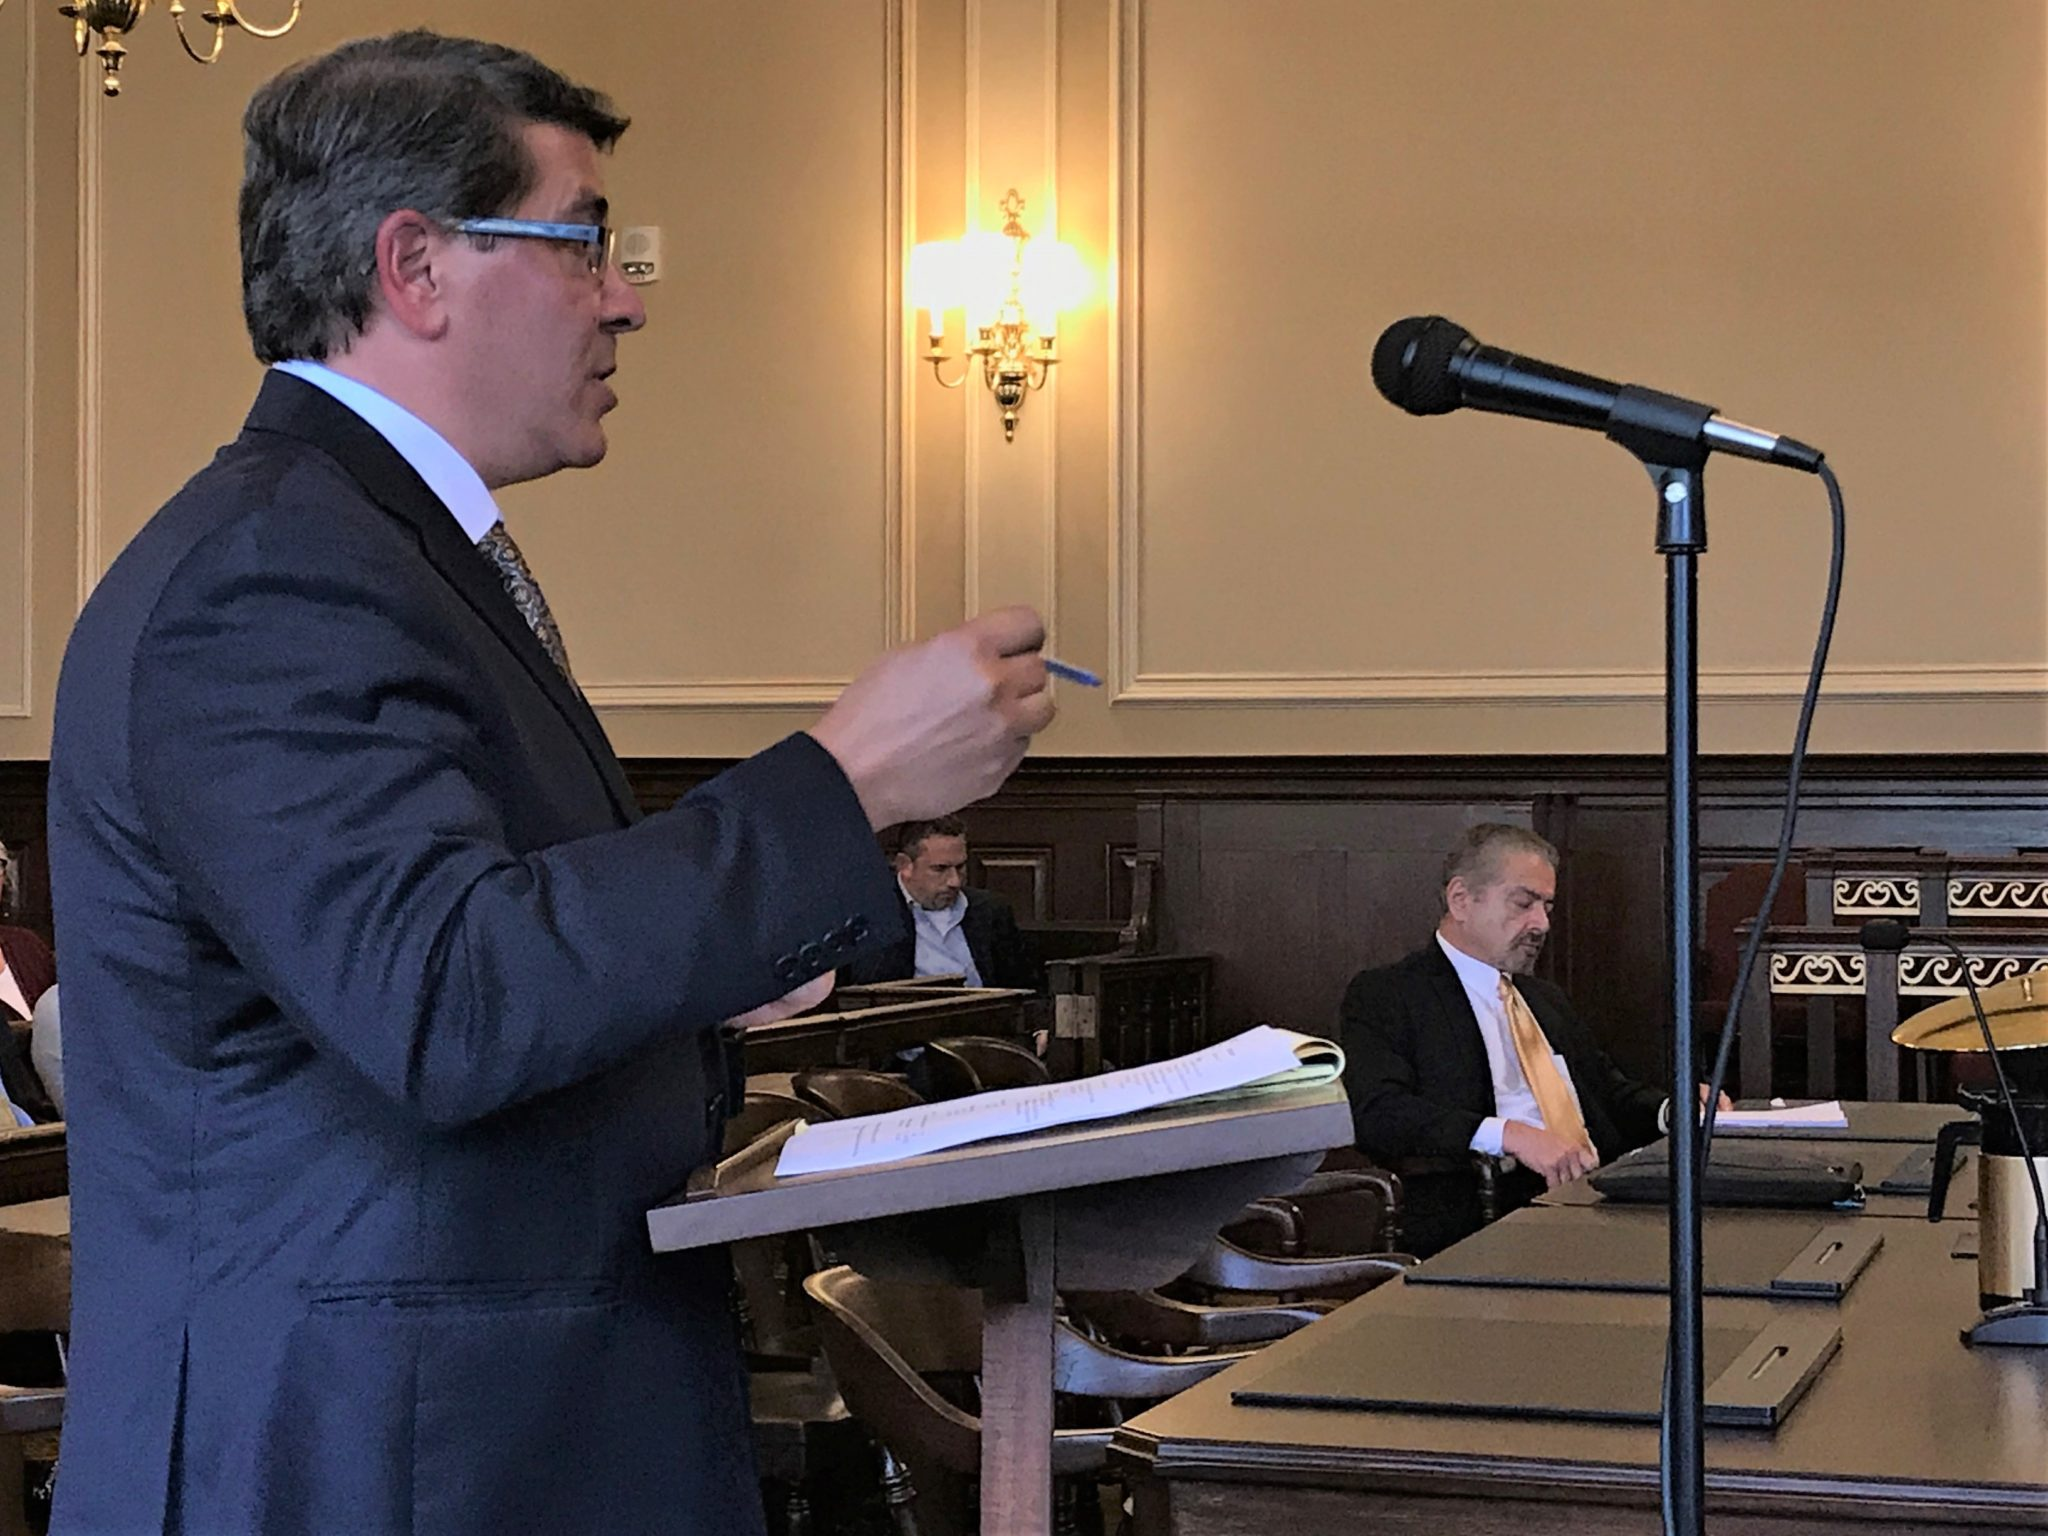 STEPHEN DEL SESTO testifies before R.I. Superior Court in 2017. He was appointed to usher the St. Joseph Health Services pension plan through receivership. Max Wistow, who was appointed special counsel, sits at right in the background. / PBN FILE PHOTO/ELI SHERMAN